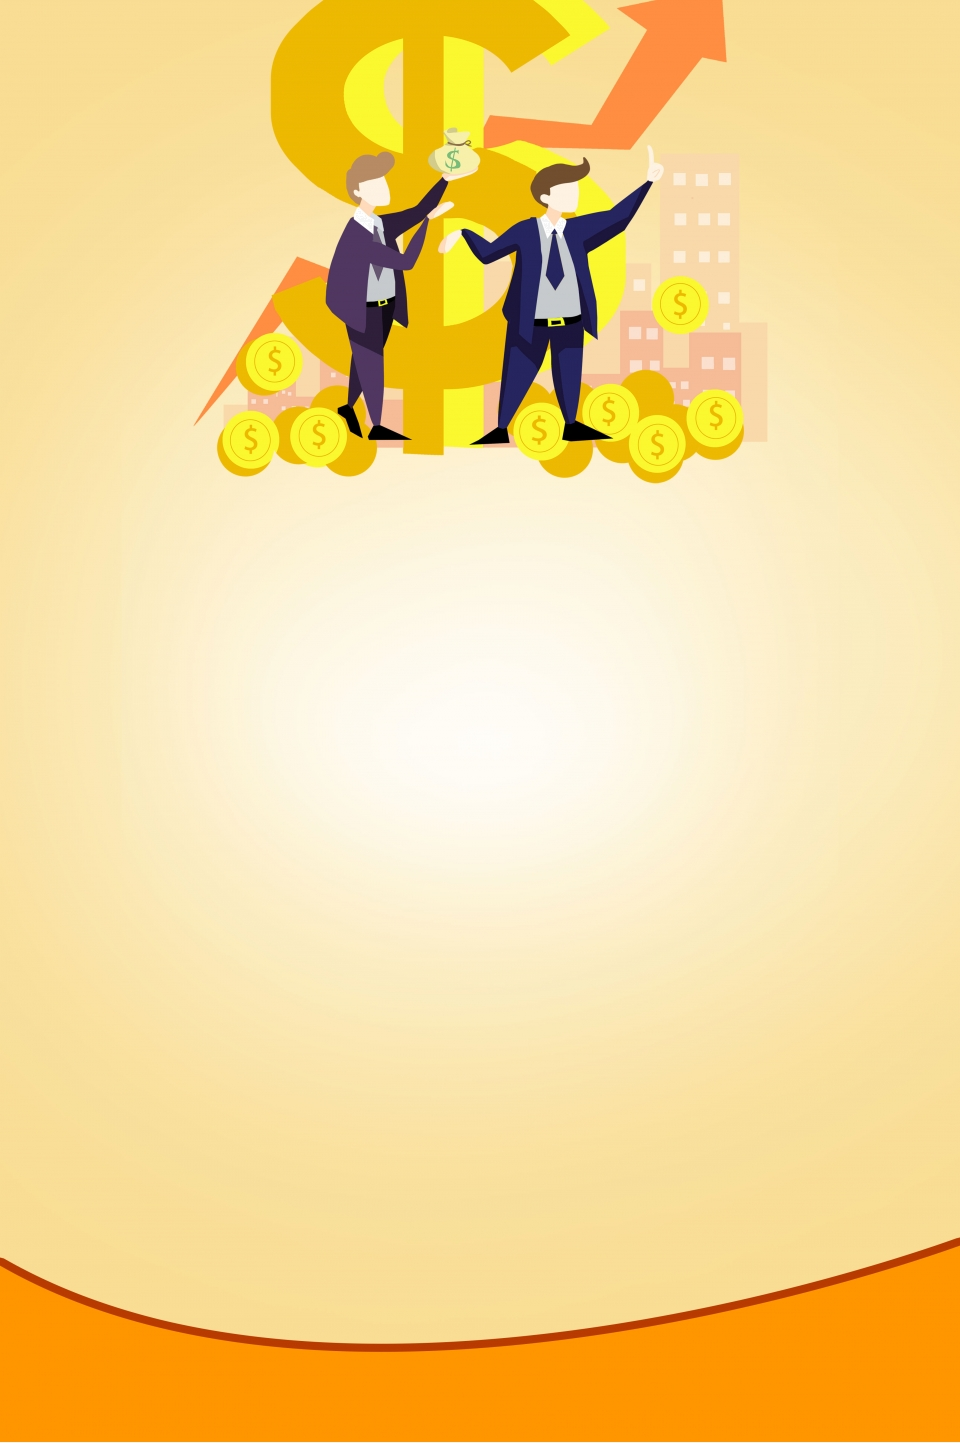 Loan Where To Go Poster Background Material Where To Go 960x1443